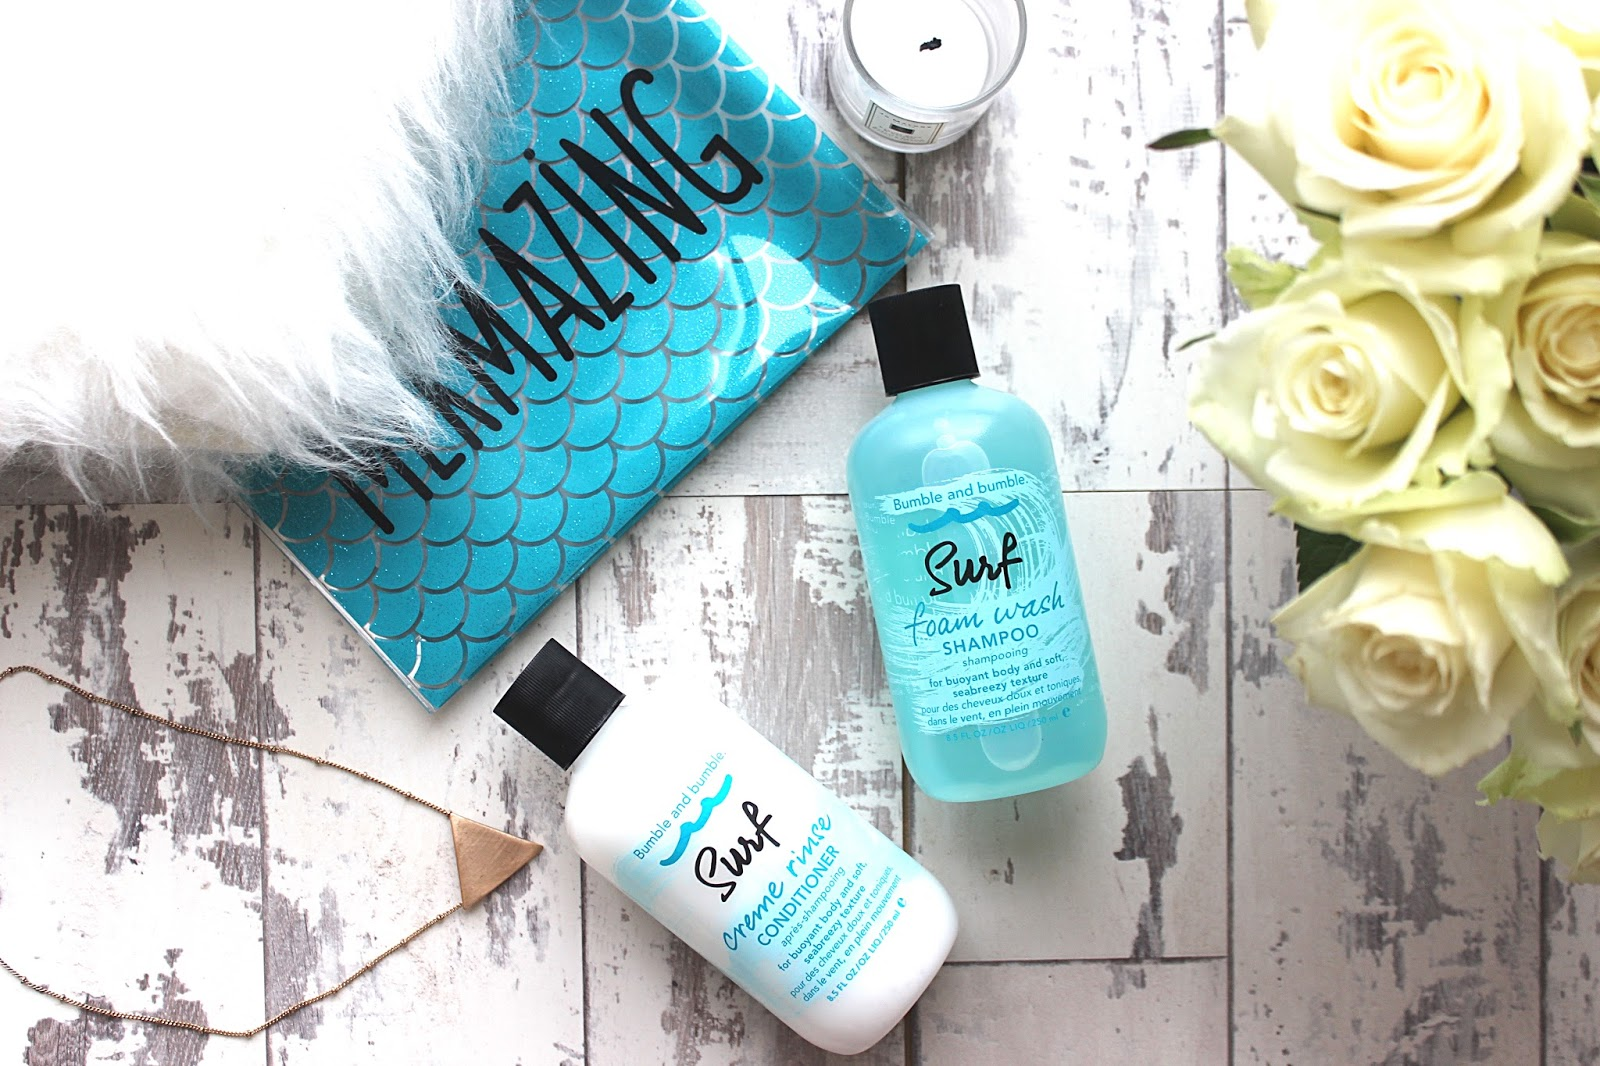 Bumble and bumble Surf shampoo and conditioner